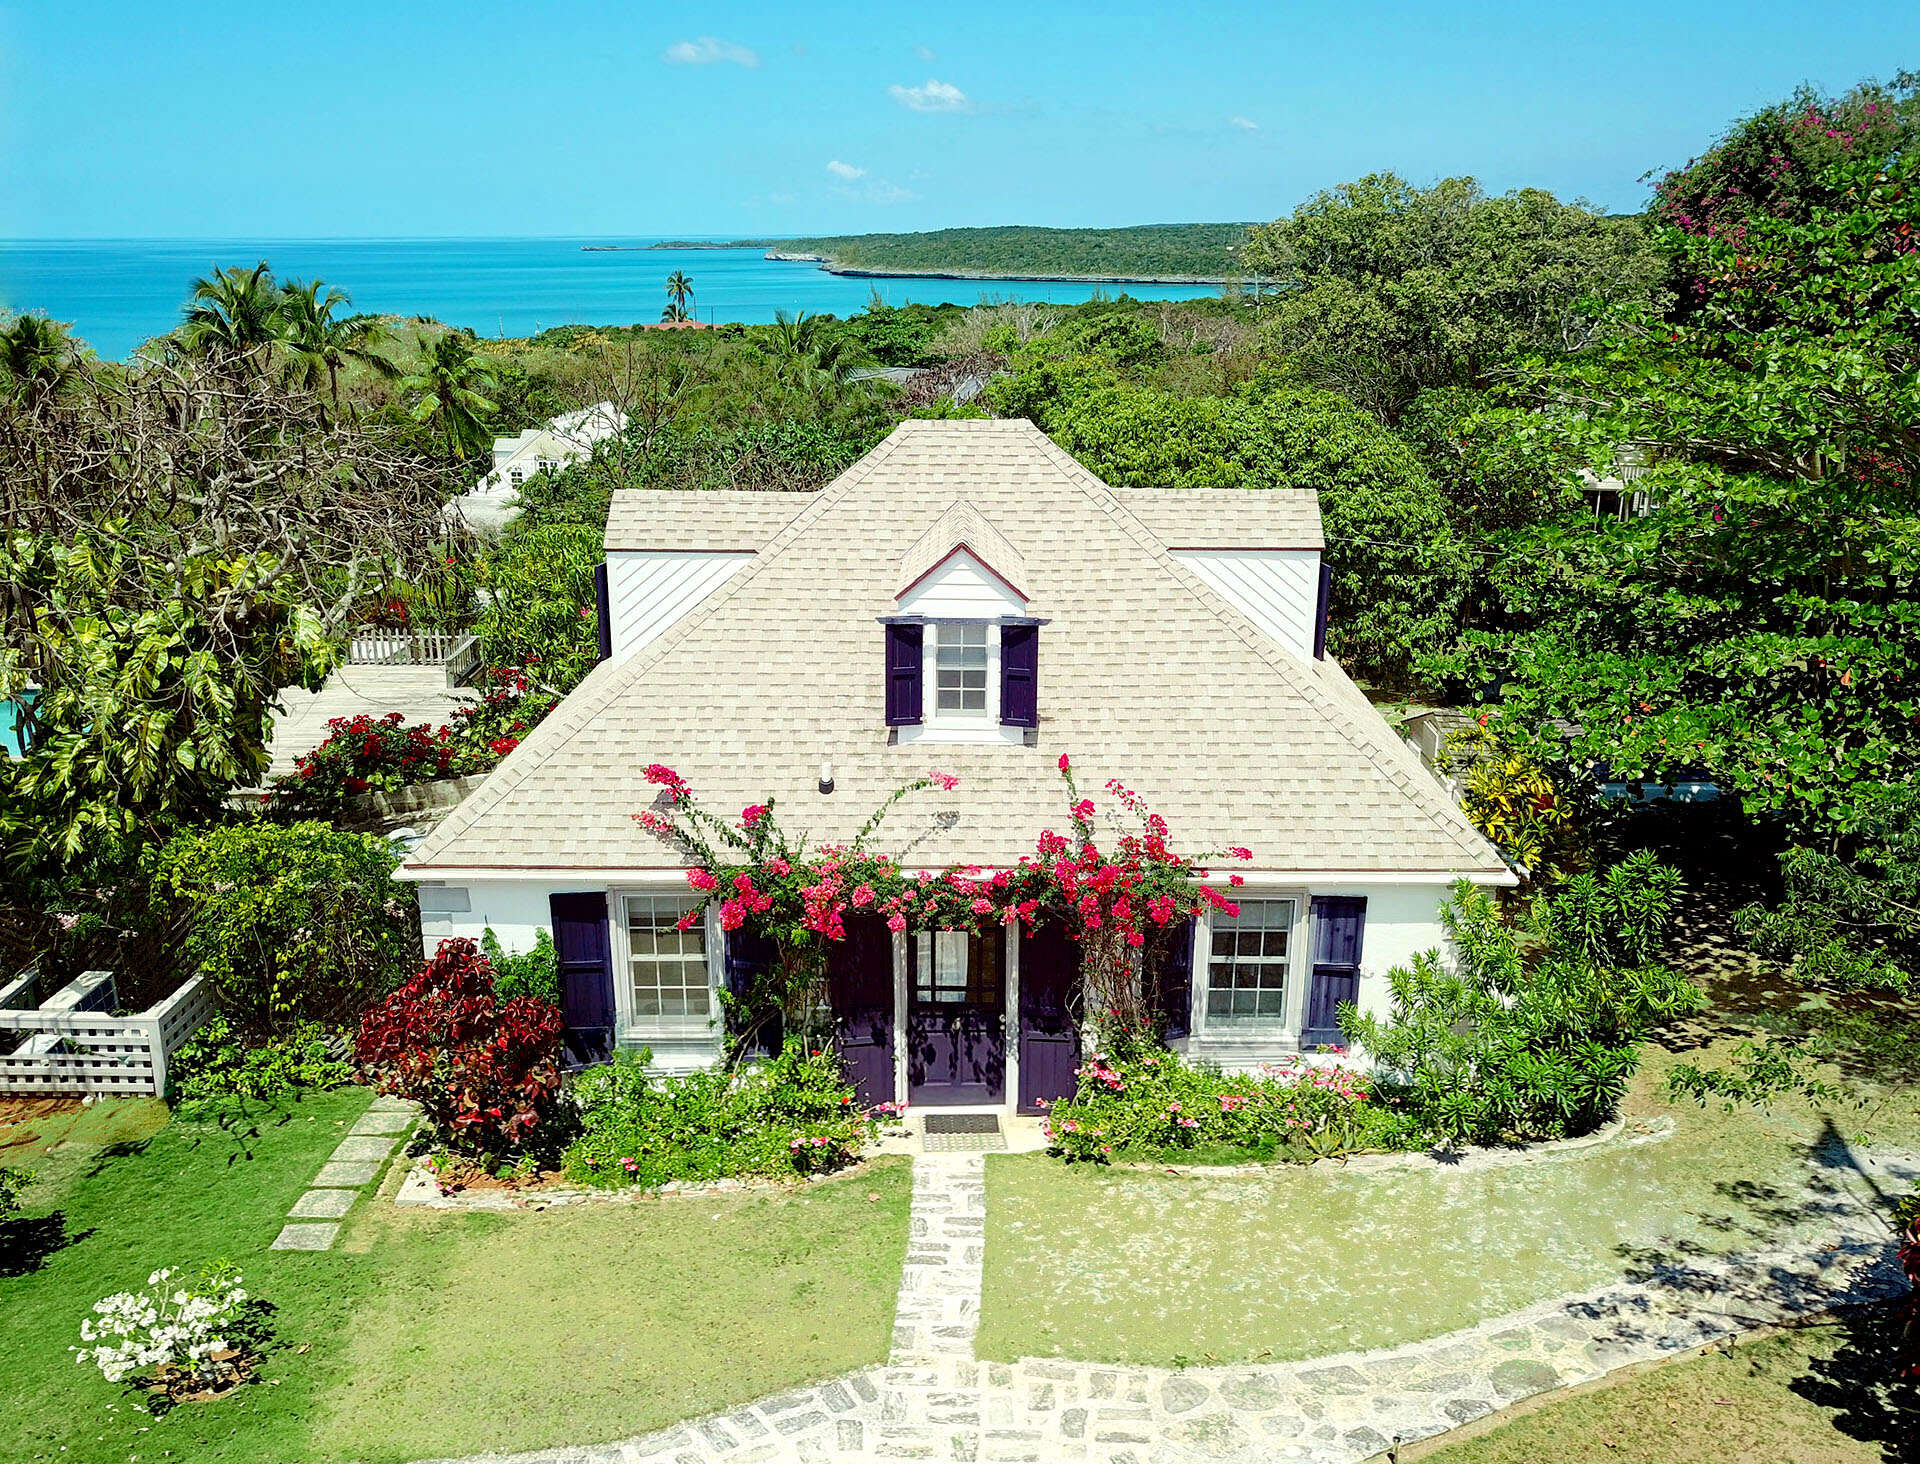 Luxury villa rentals caribbean - Bahamas - Eleuthera - Governors harbour - Toad Hall - Image 1/14